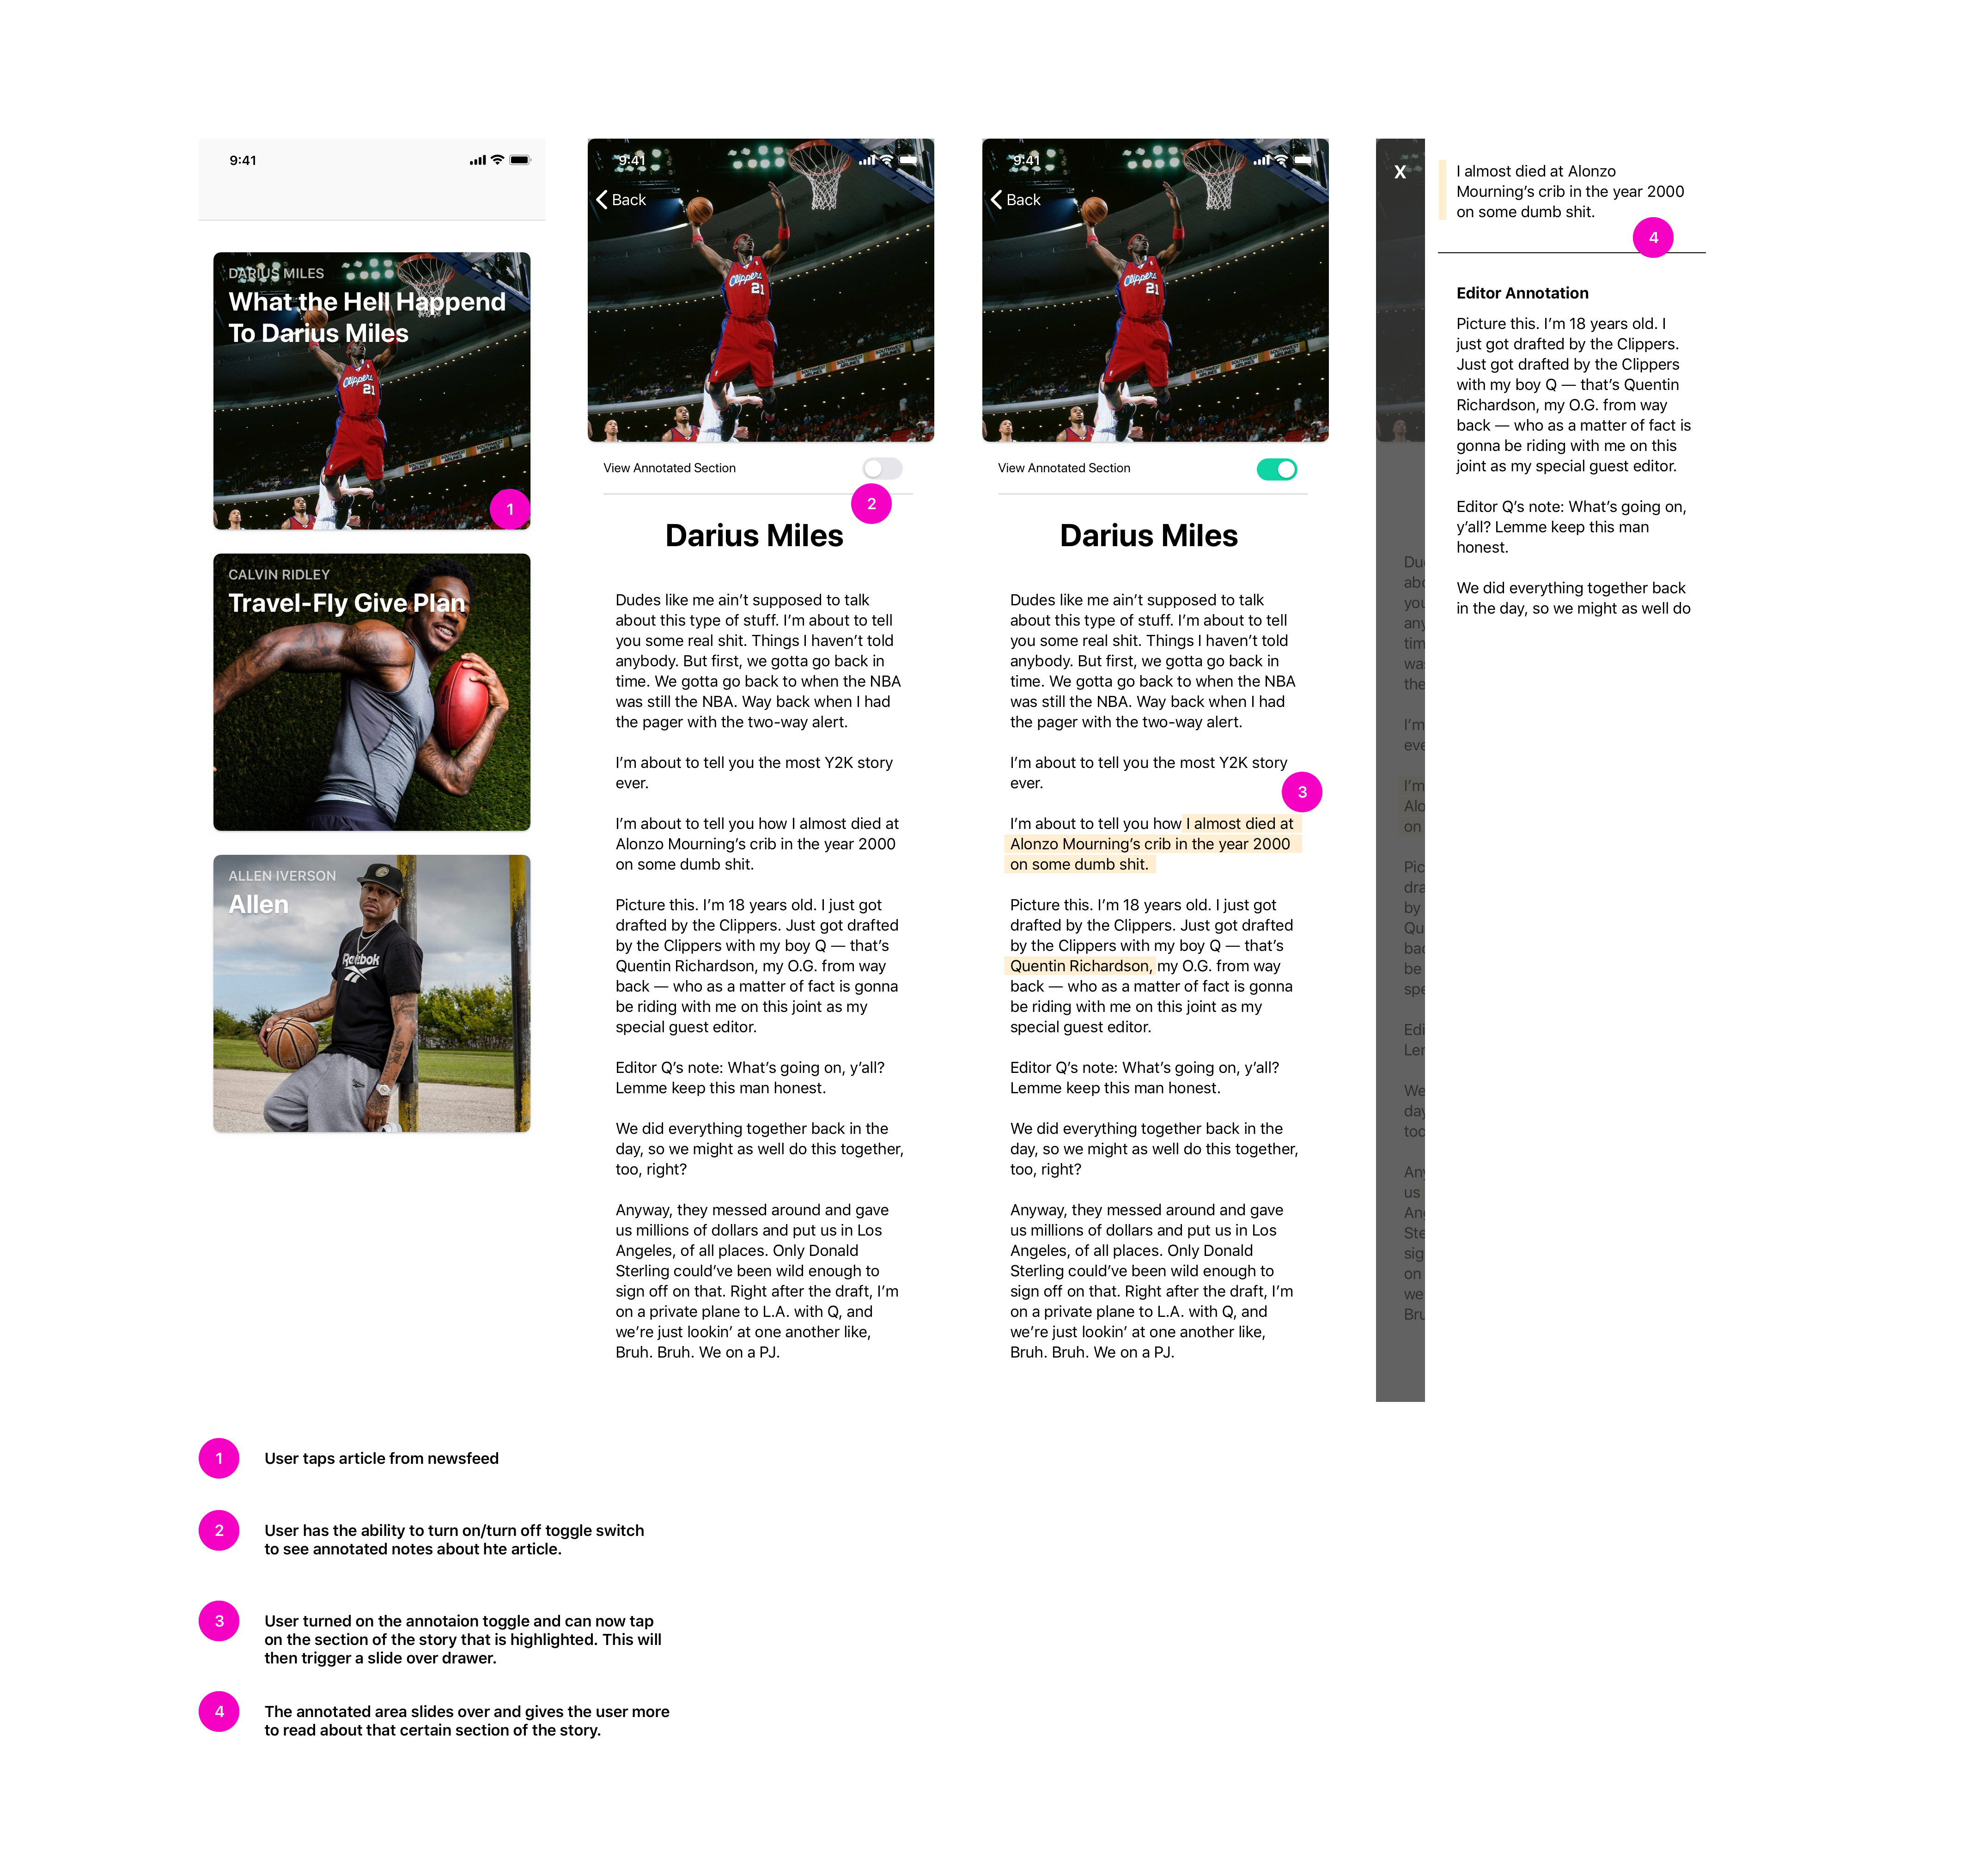 Annotated screen